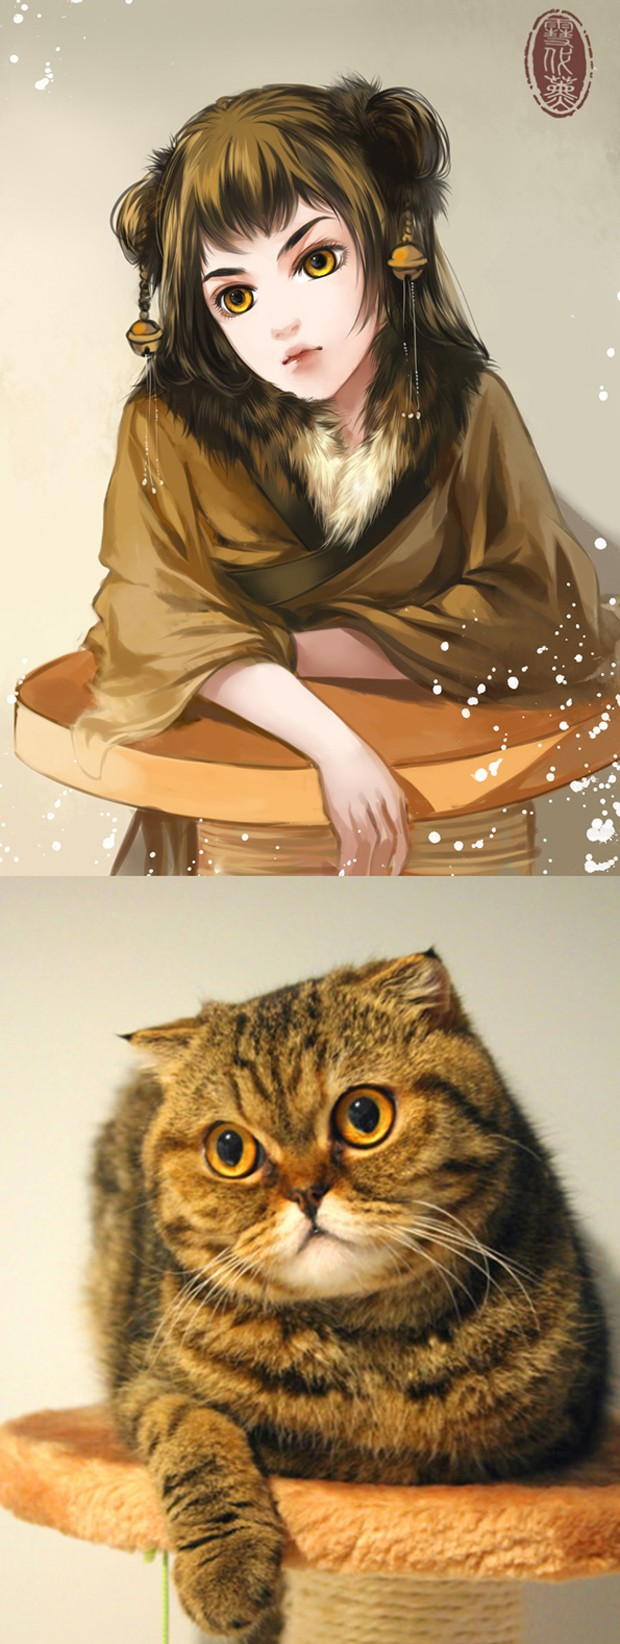 illustrations_based_on_cats_by_xuedaixun_6